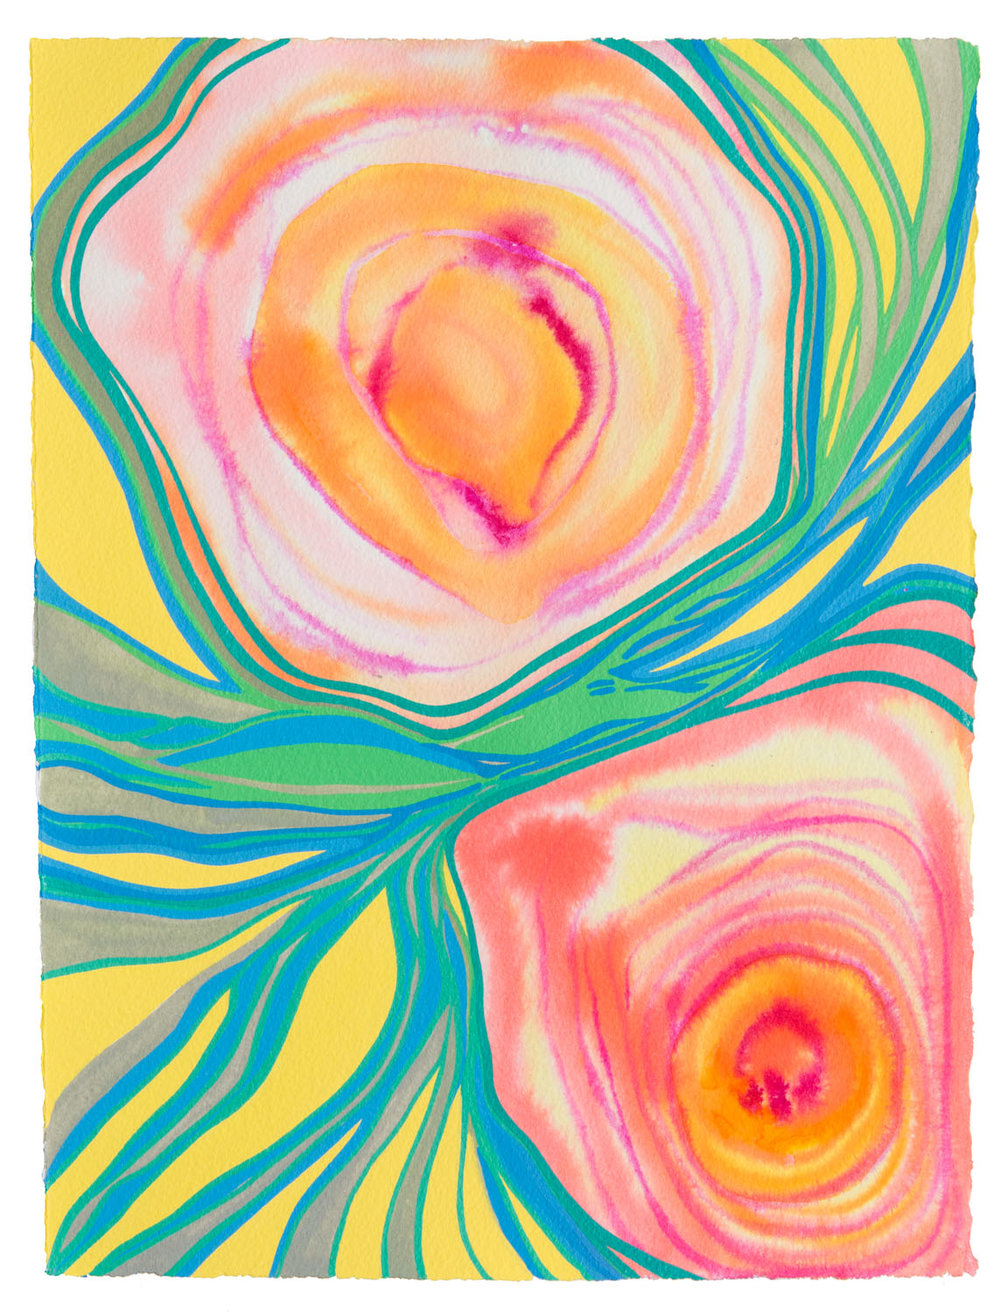 untitled u, 2017 11 1/2 x 15 inches gouache on paper 100-121